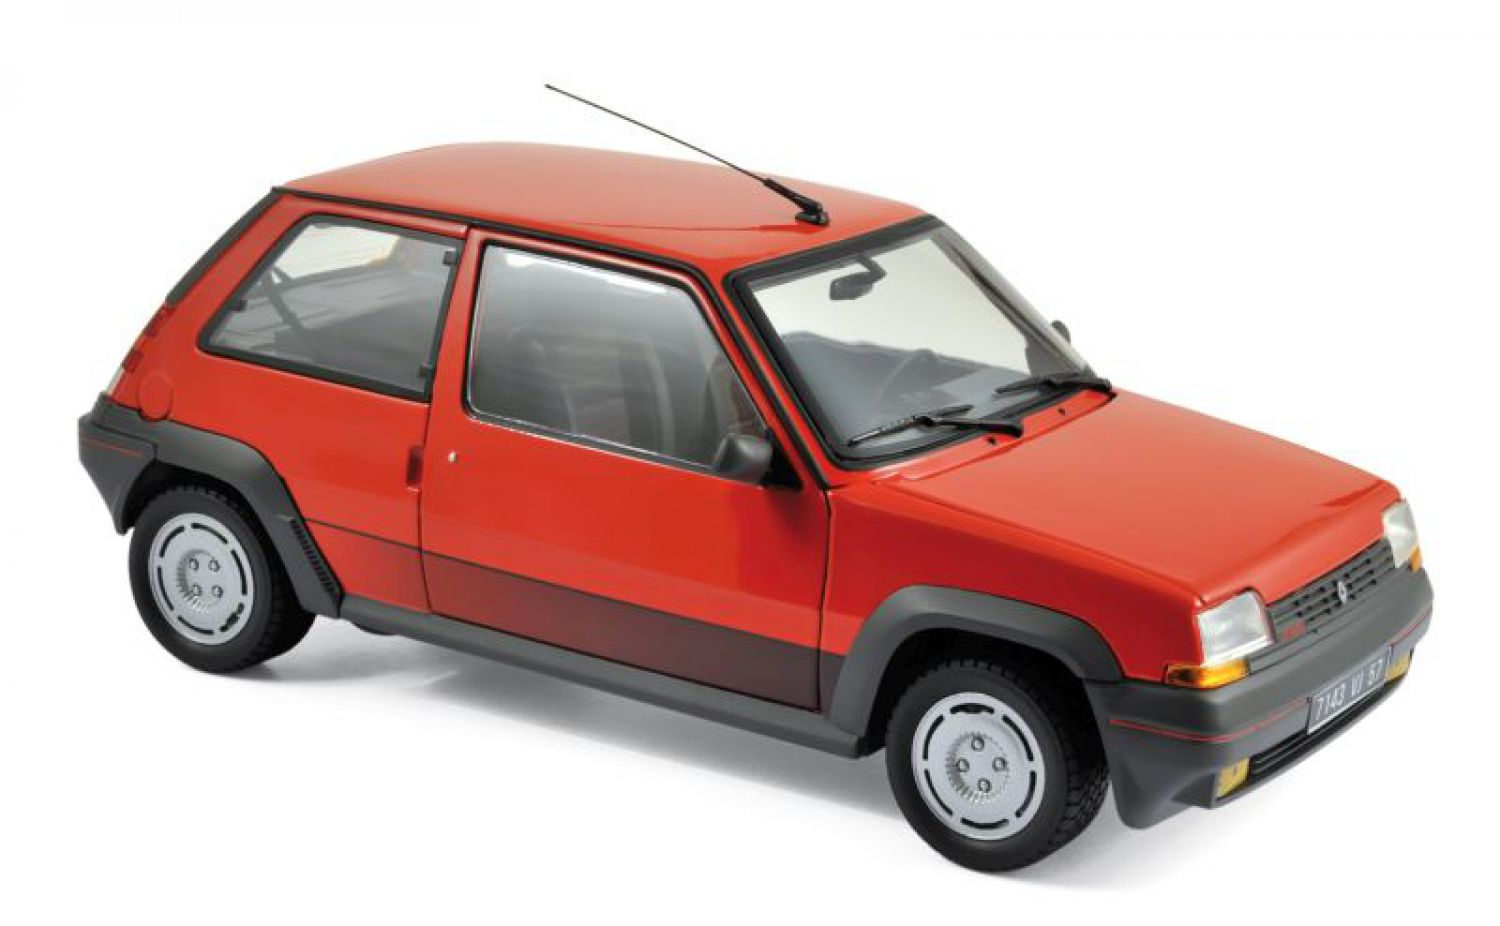 renault 5 supercinq gt turbo 1989 rouge mod le de voiture 1 18 norev ebay. Black Bedroom Furniture Sets. Home Design Ideas